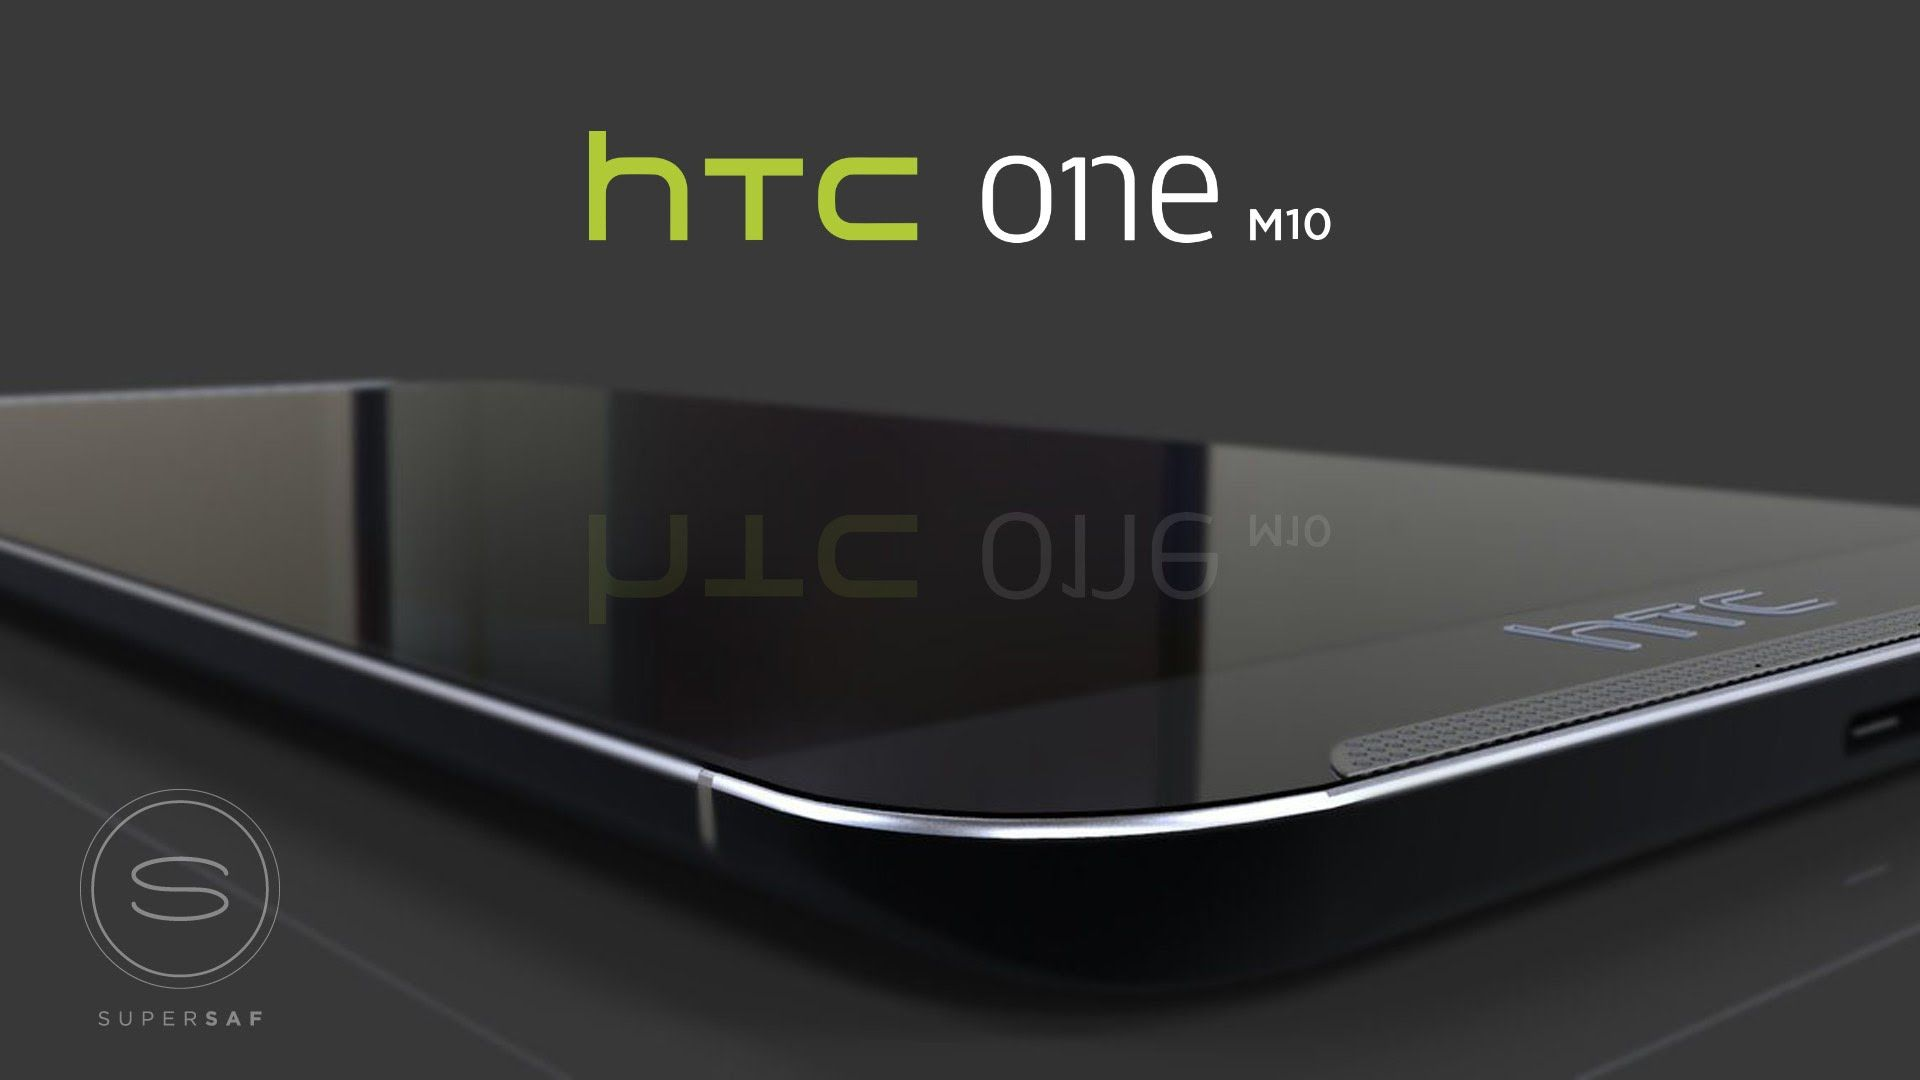 HTC to launch HTC One M10 April 12